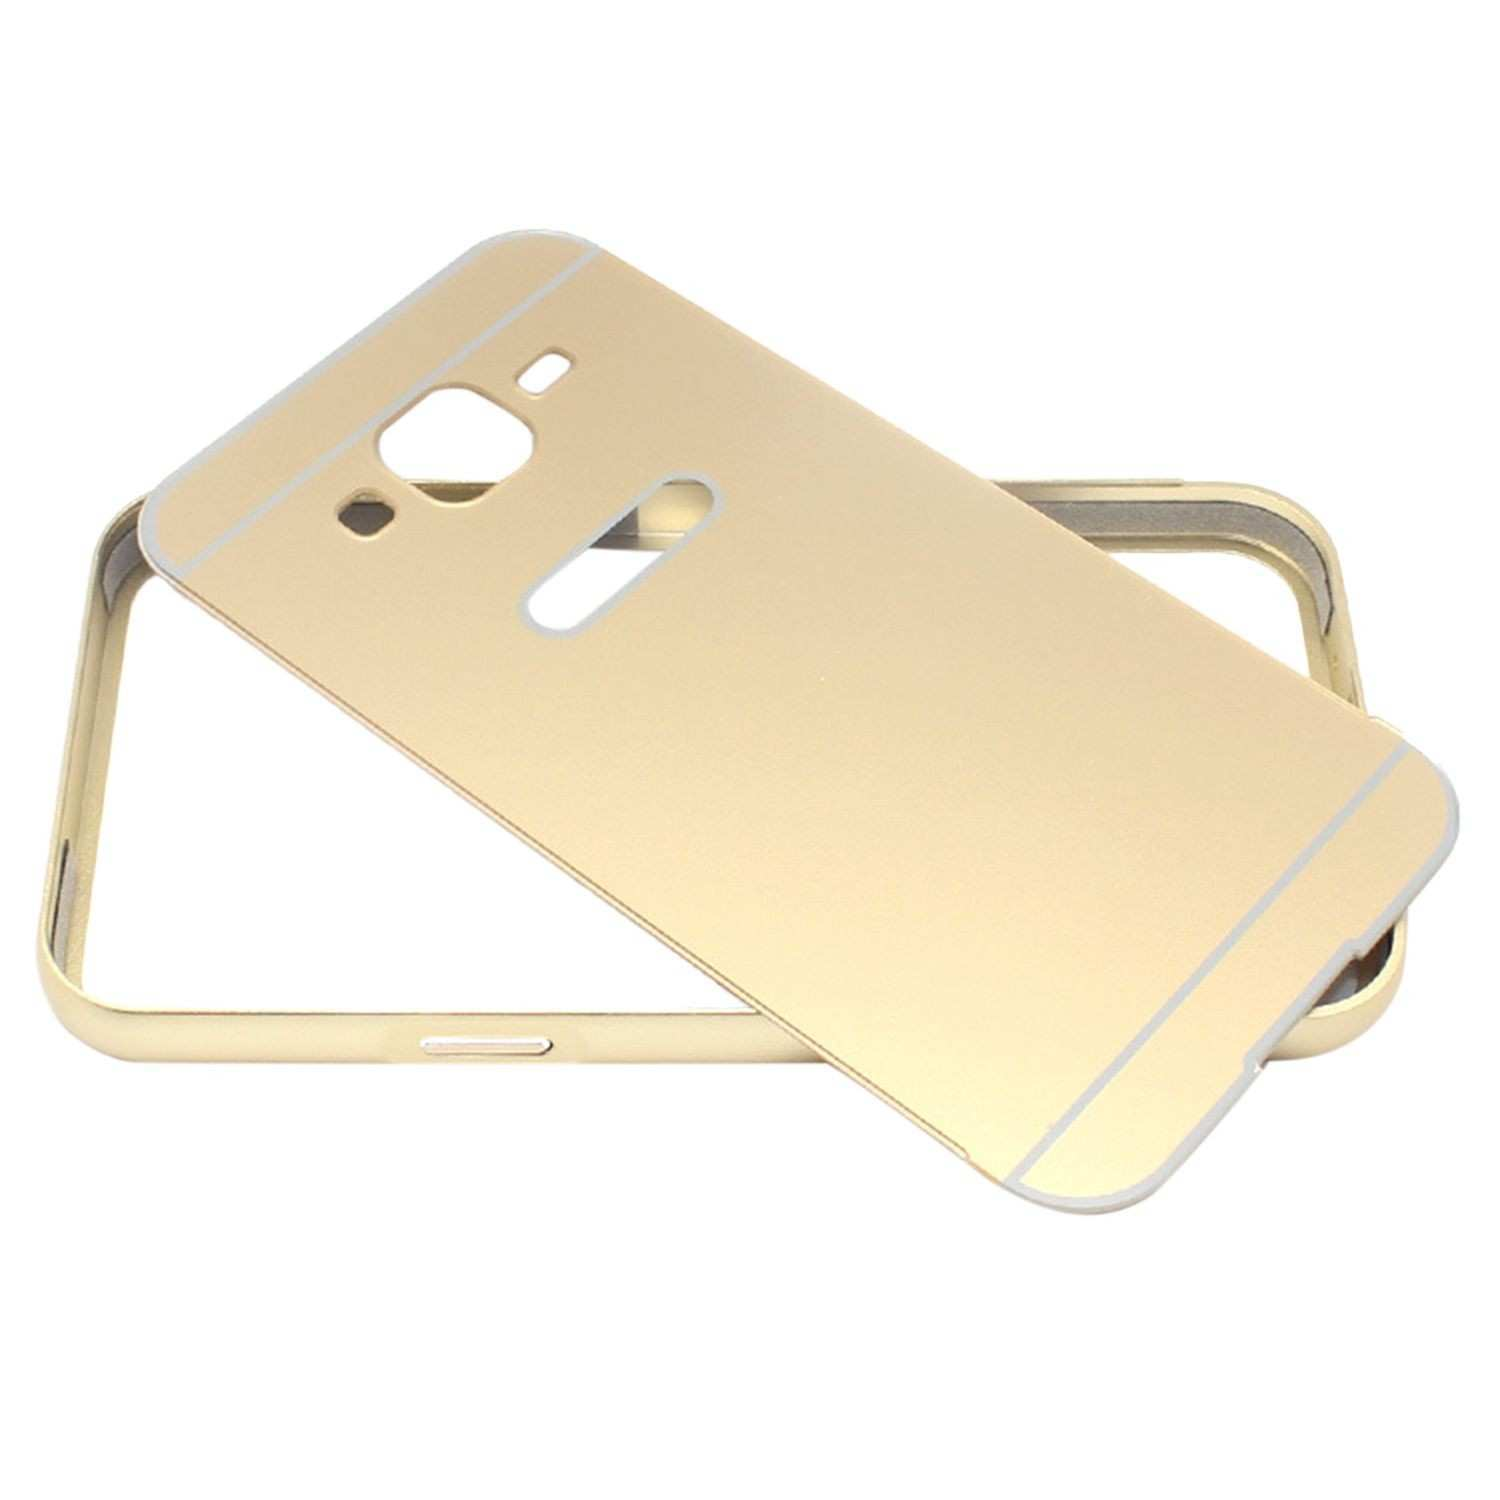 ADZ ONLINE MIRROR BACK COVER FOR SAMSUNG GALAXY J5 GOLD Plain Back